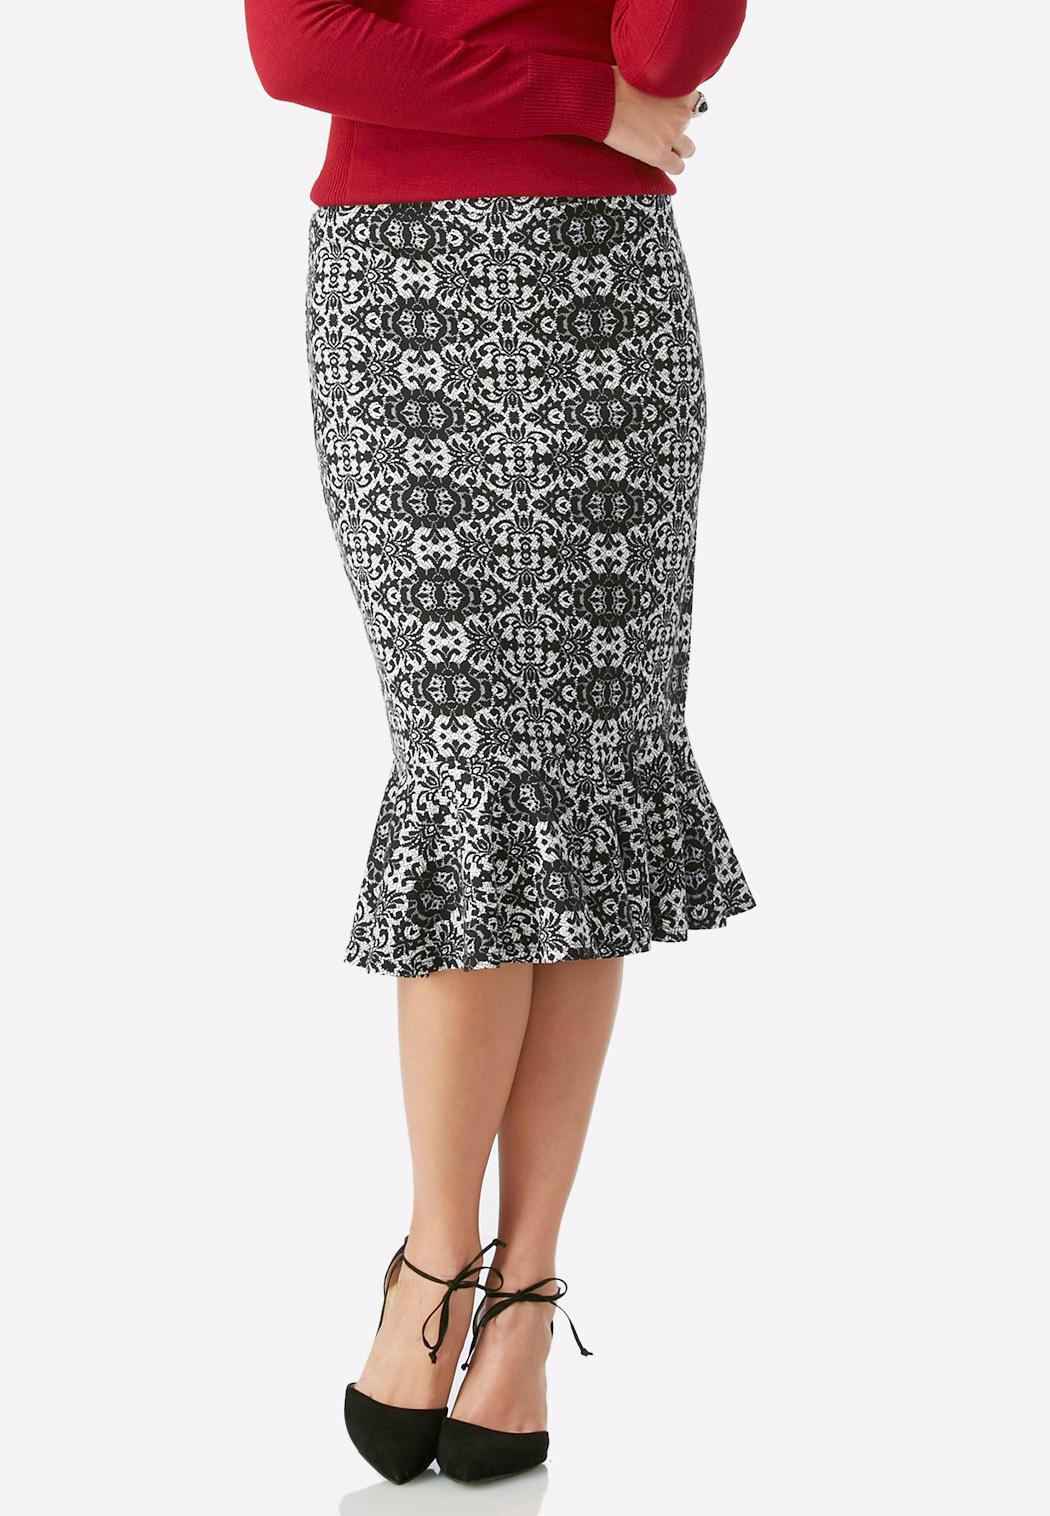 scroll print flounced skirt below the knee cato fashions